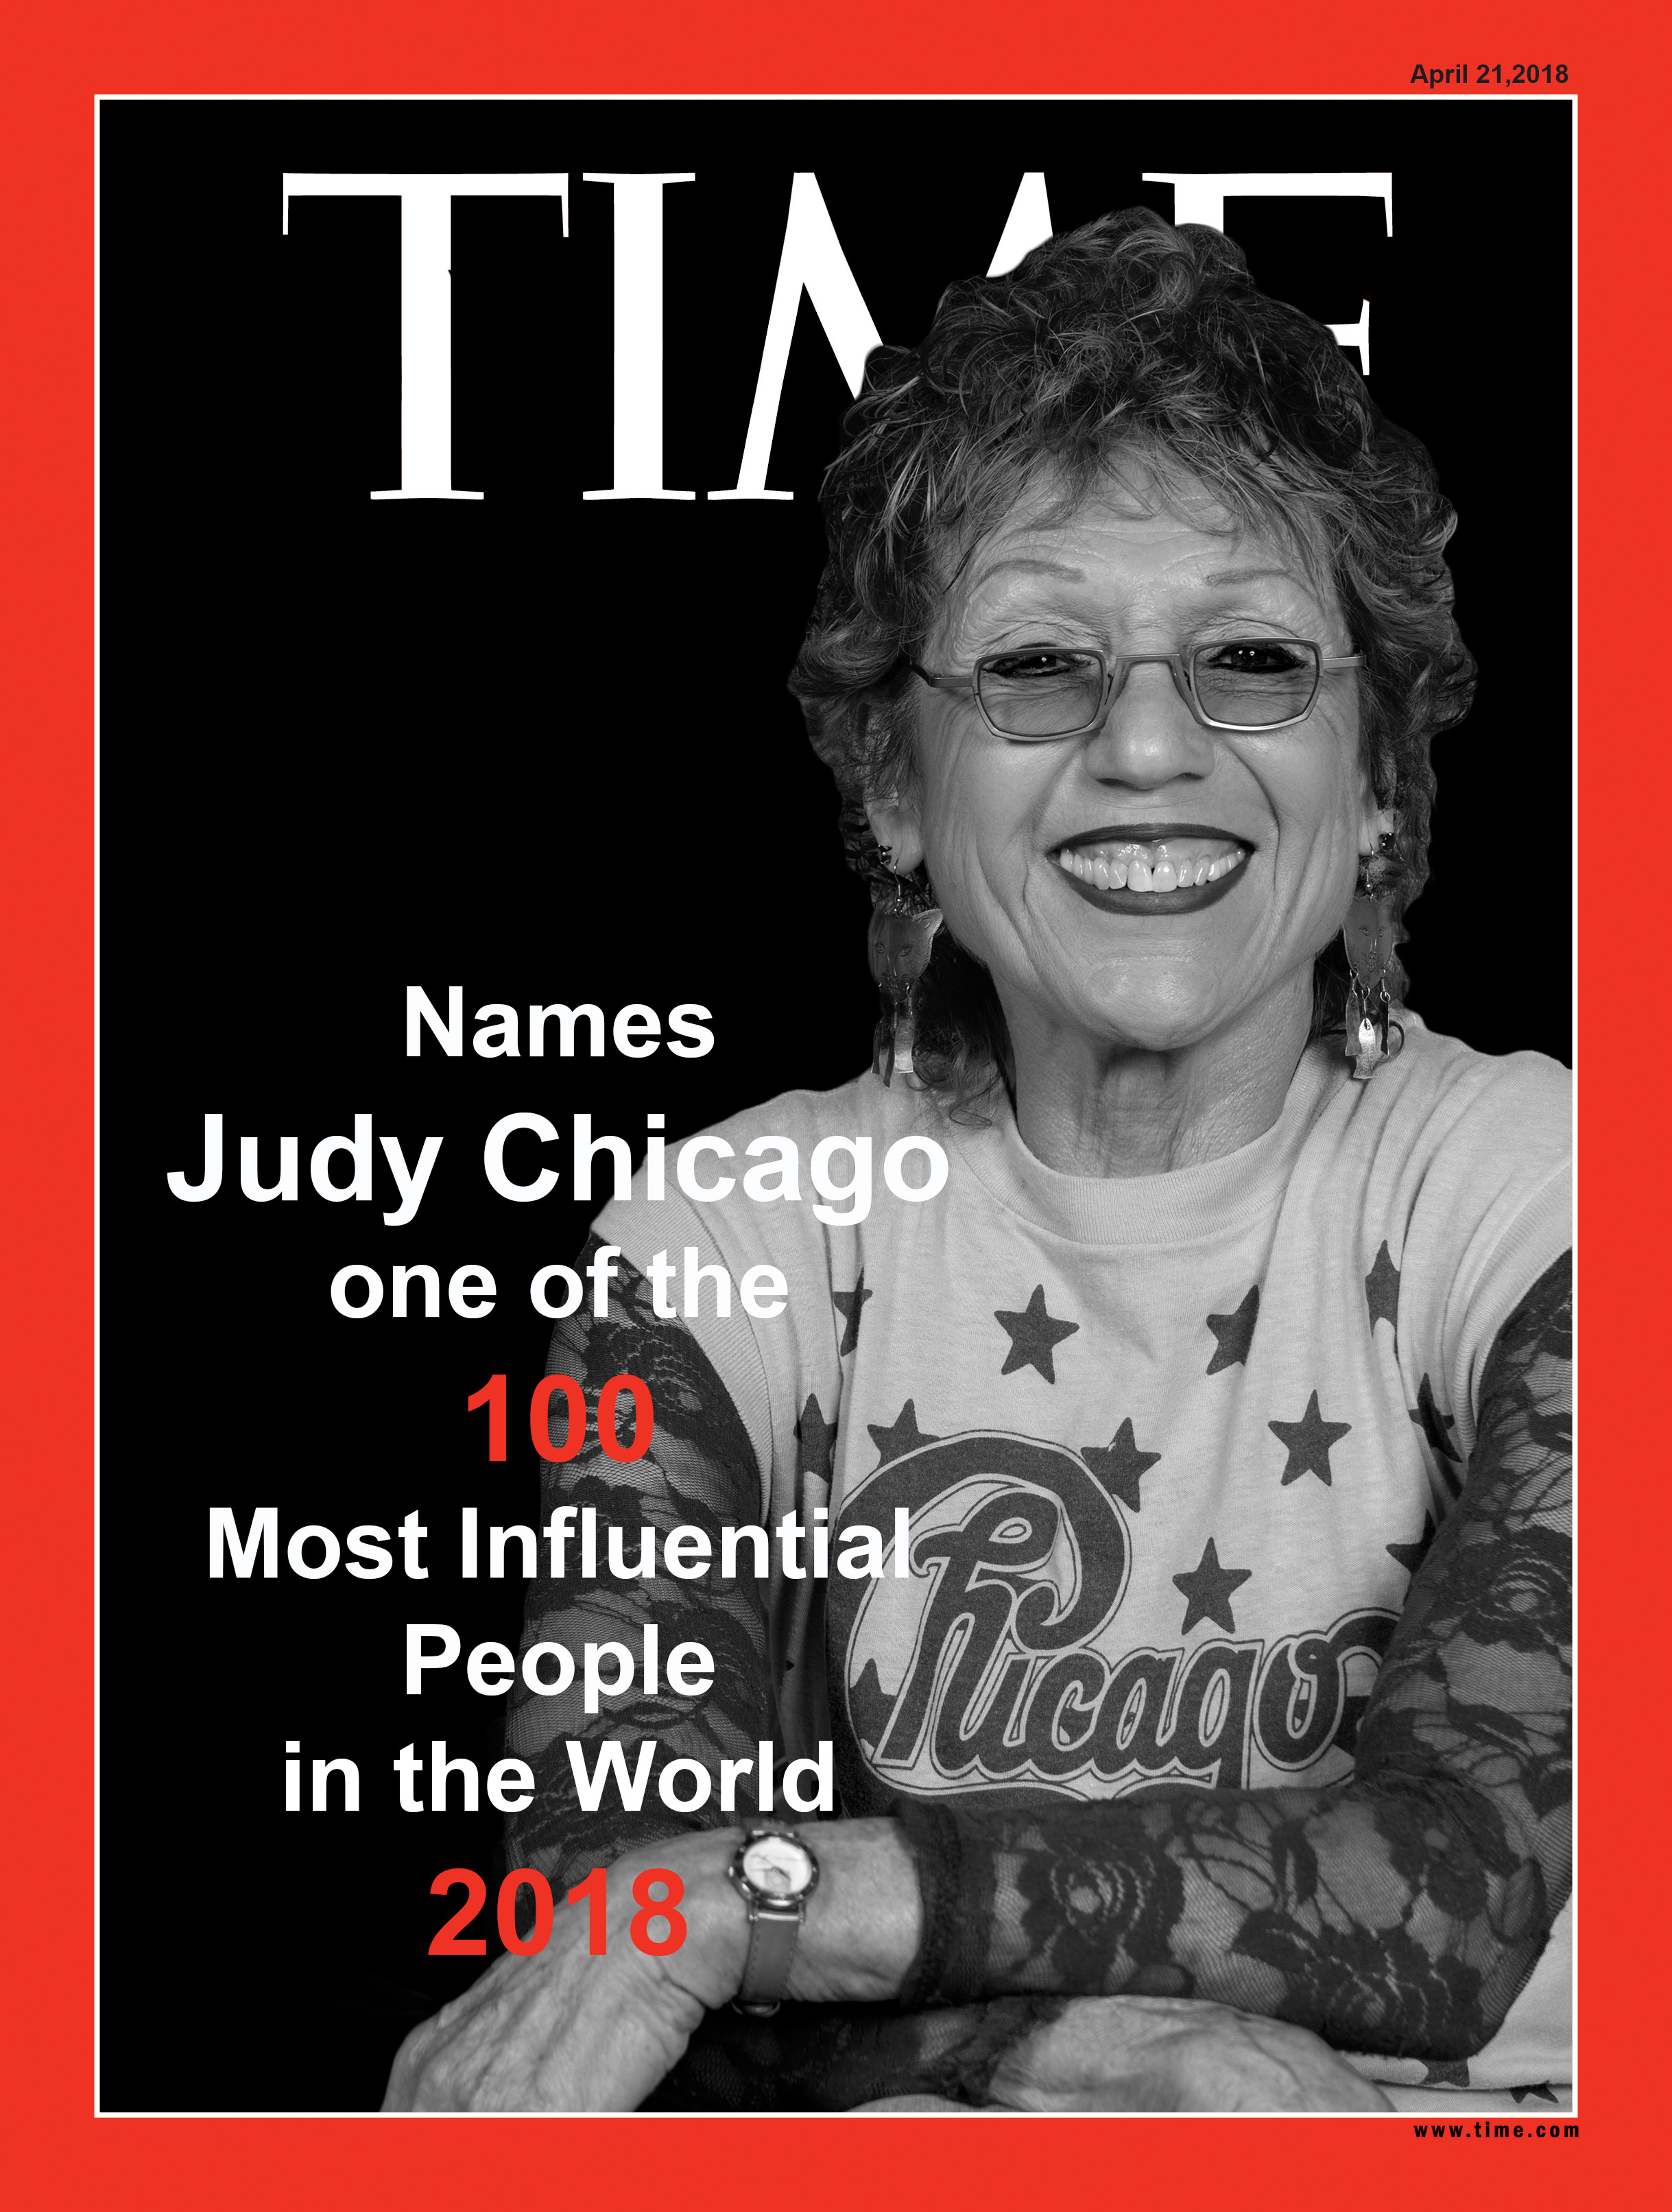 Judy Chicago ARTIST JUDY CHICAGO NAMED TO TIME 100 ANNUAL LIST OF MOST INFLUENTIAL PEOPLE IN THE WORLD